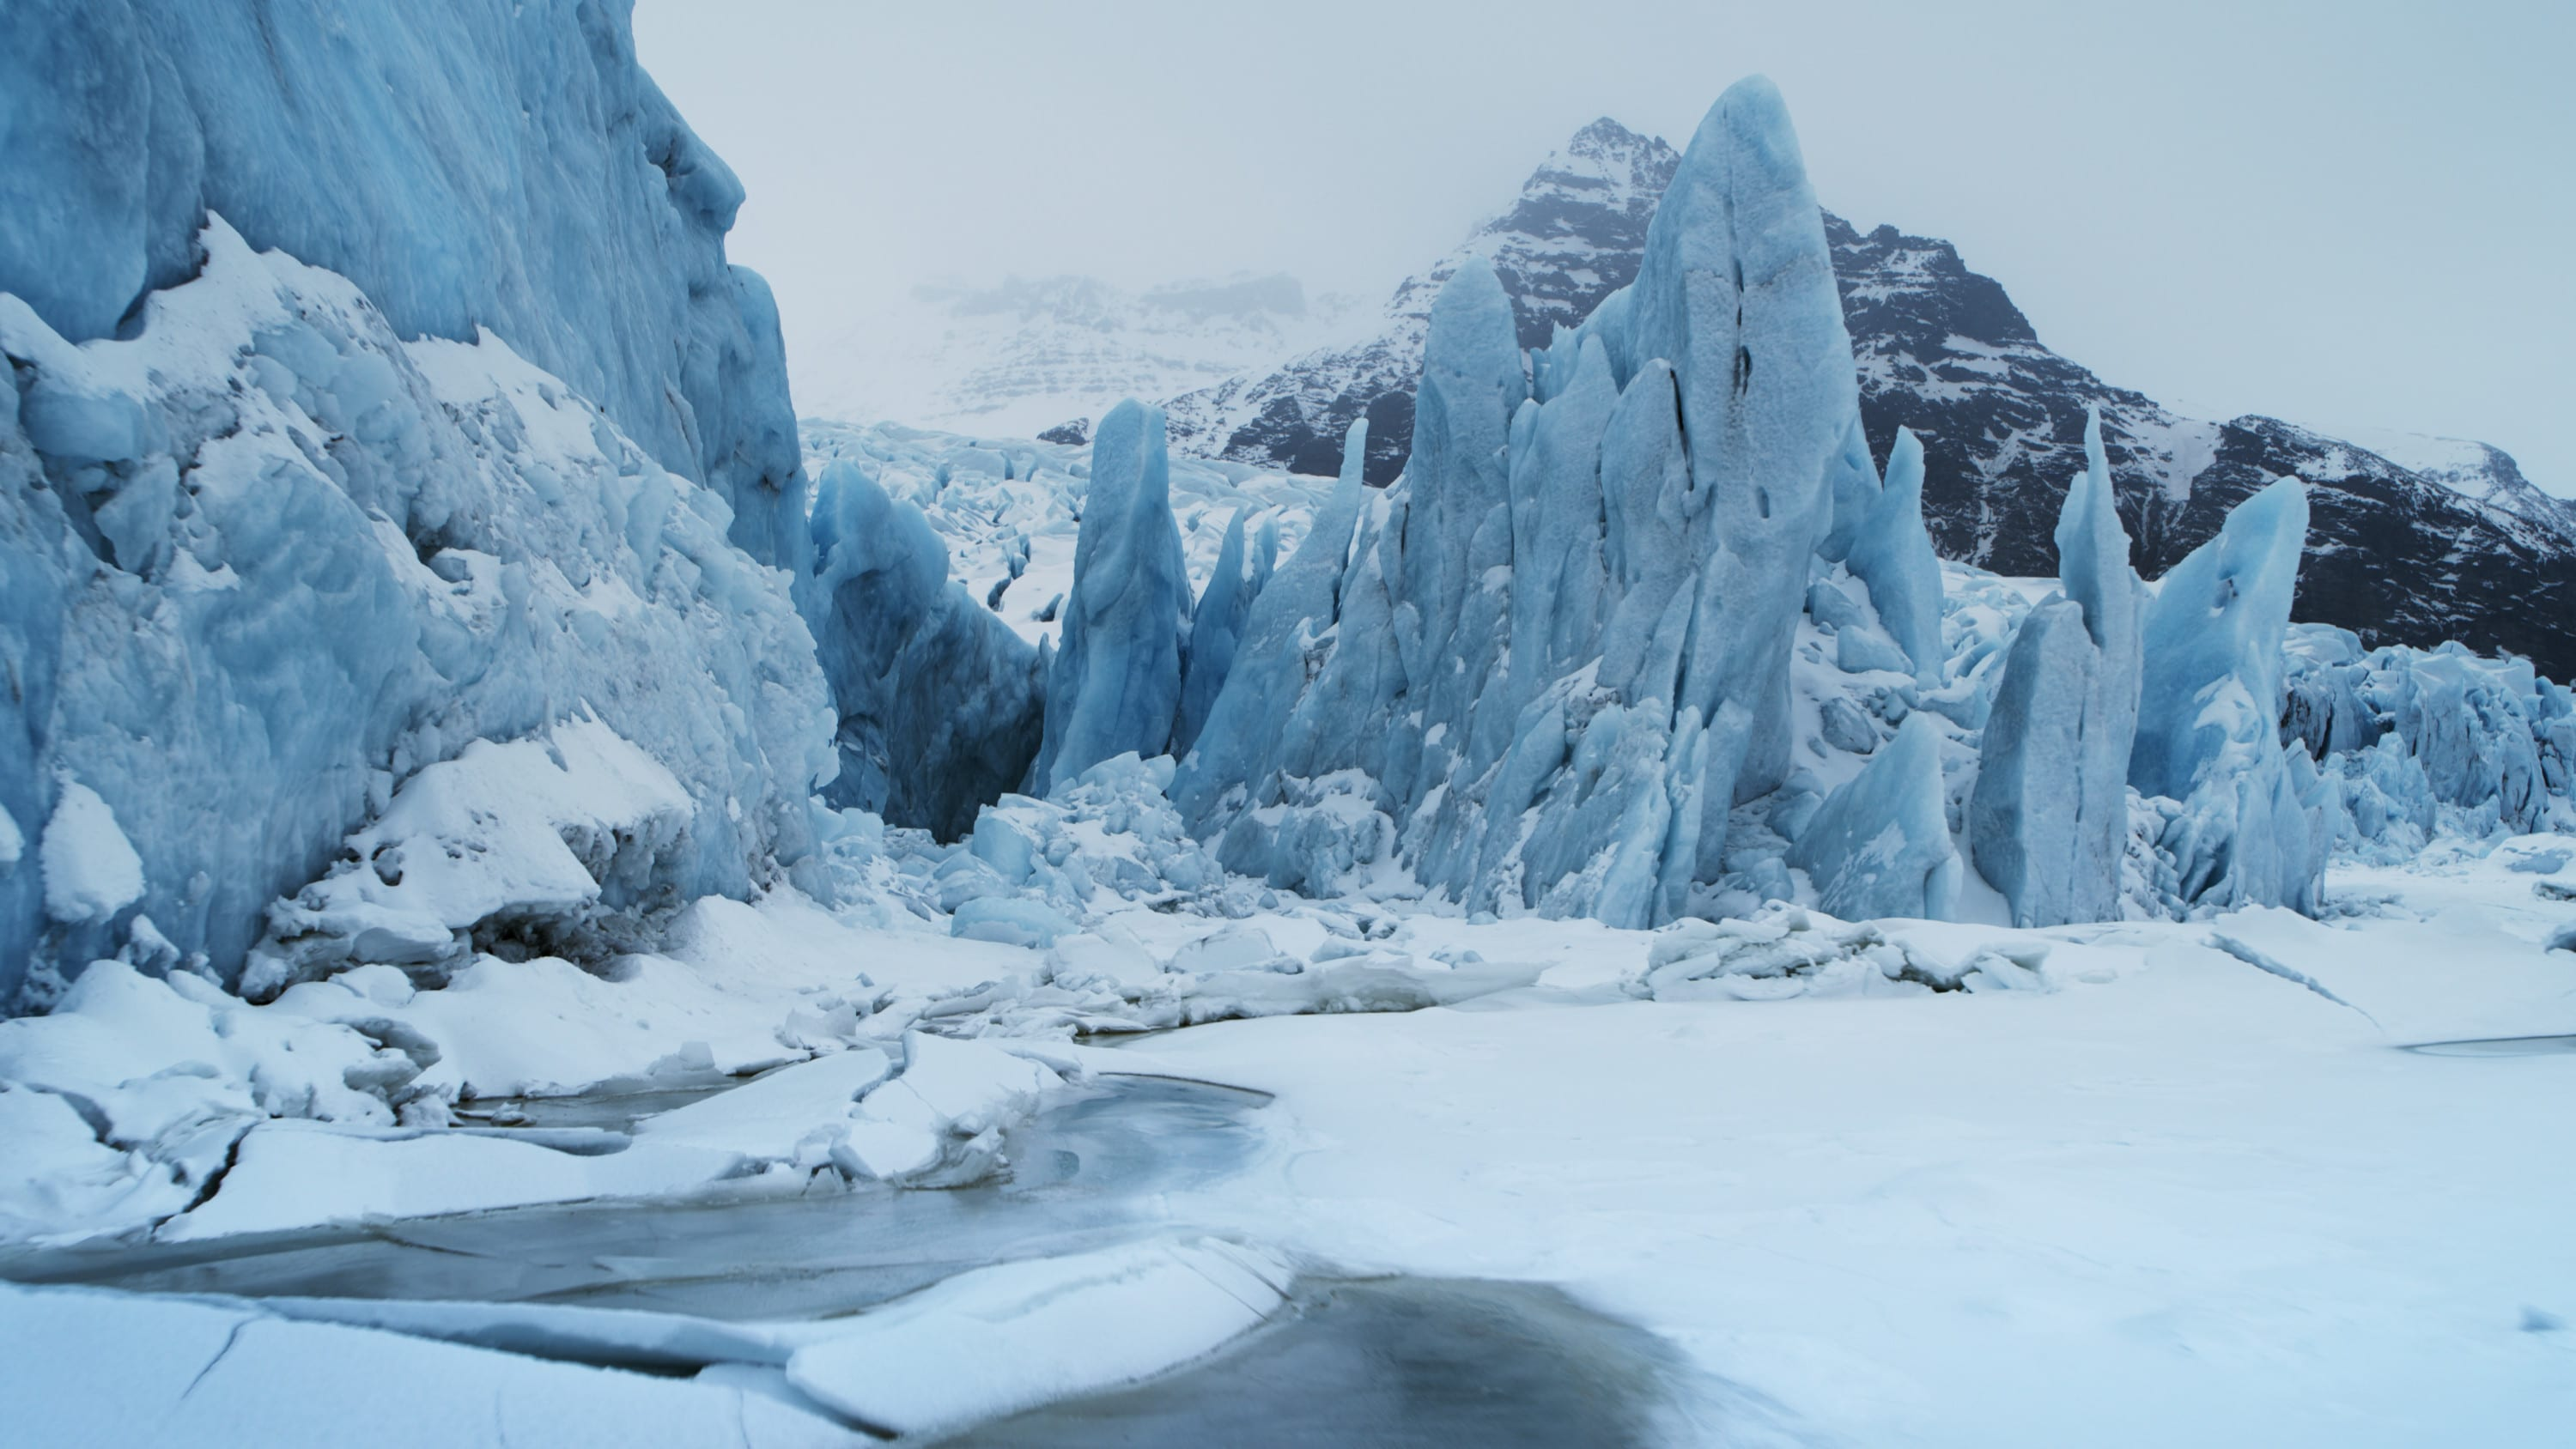 A glacier in Jökulsárlón National Park with mountains in the distance. (National Geographic for Disney+)